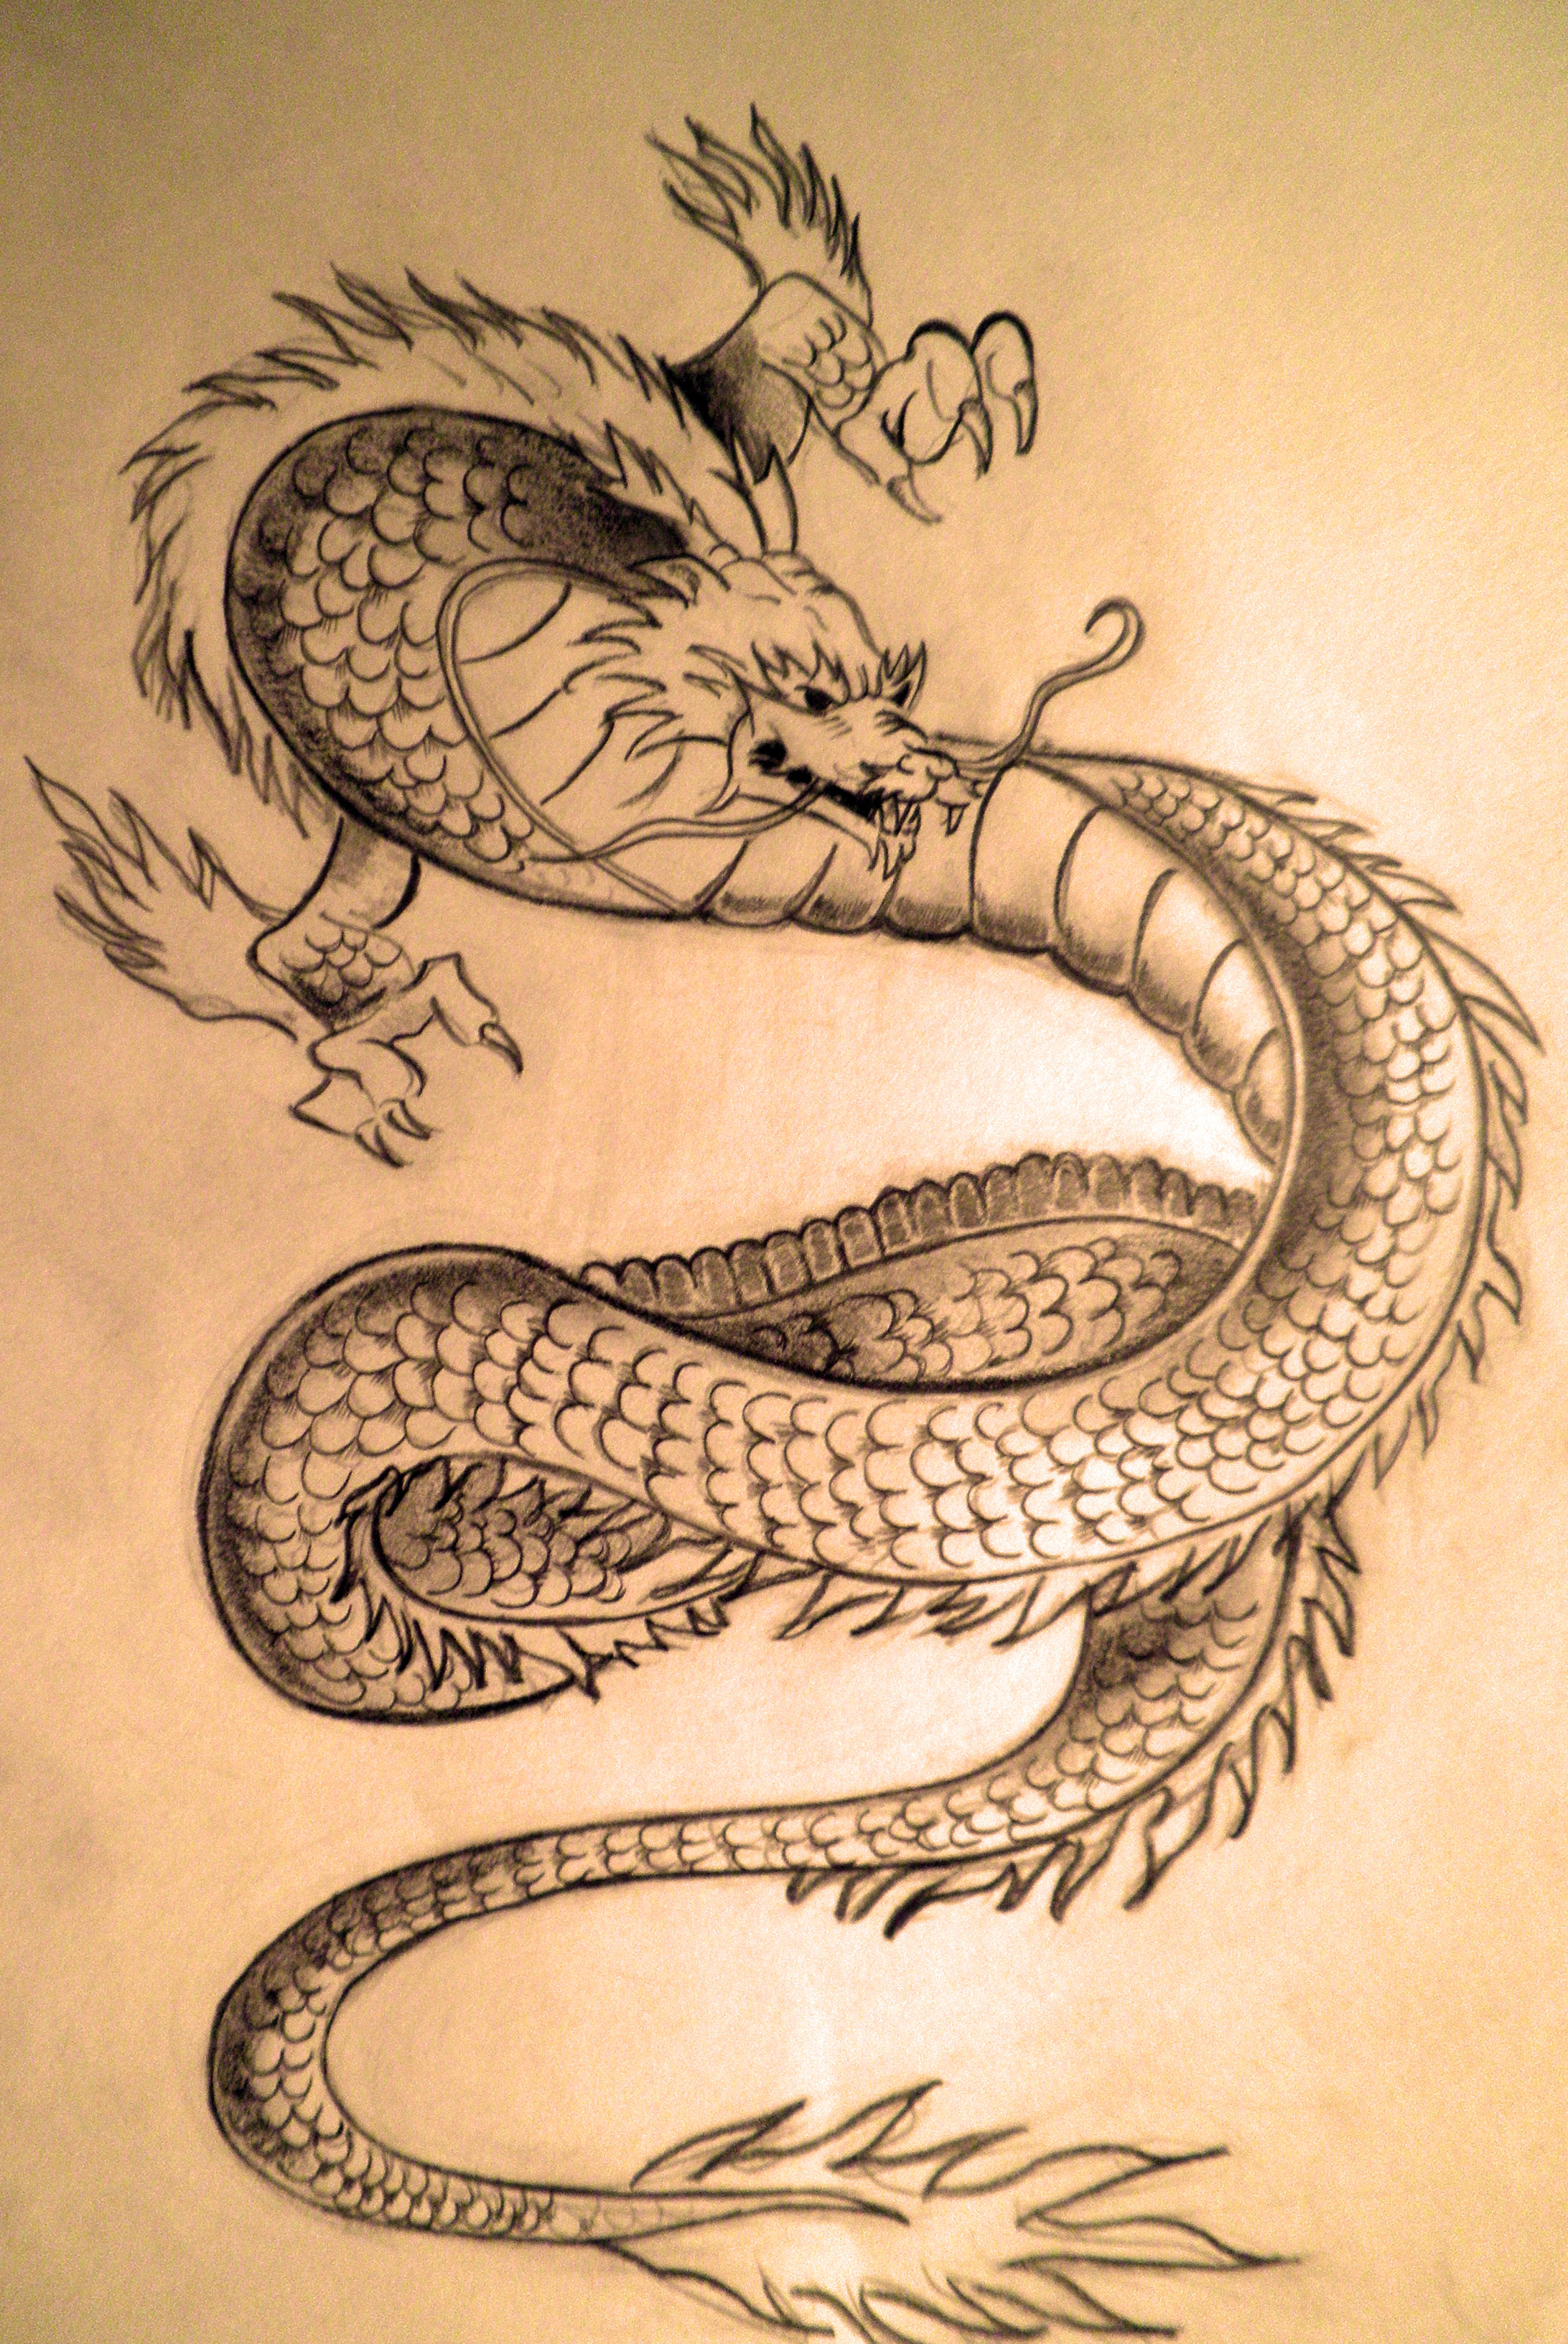 Japanese Dragon: Japanese Traditional Dragon By Rizb0 On DeviantArt